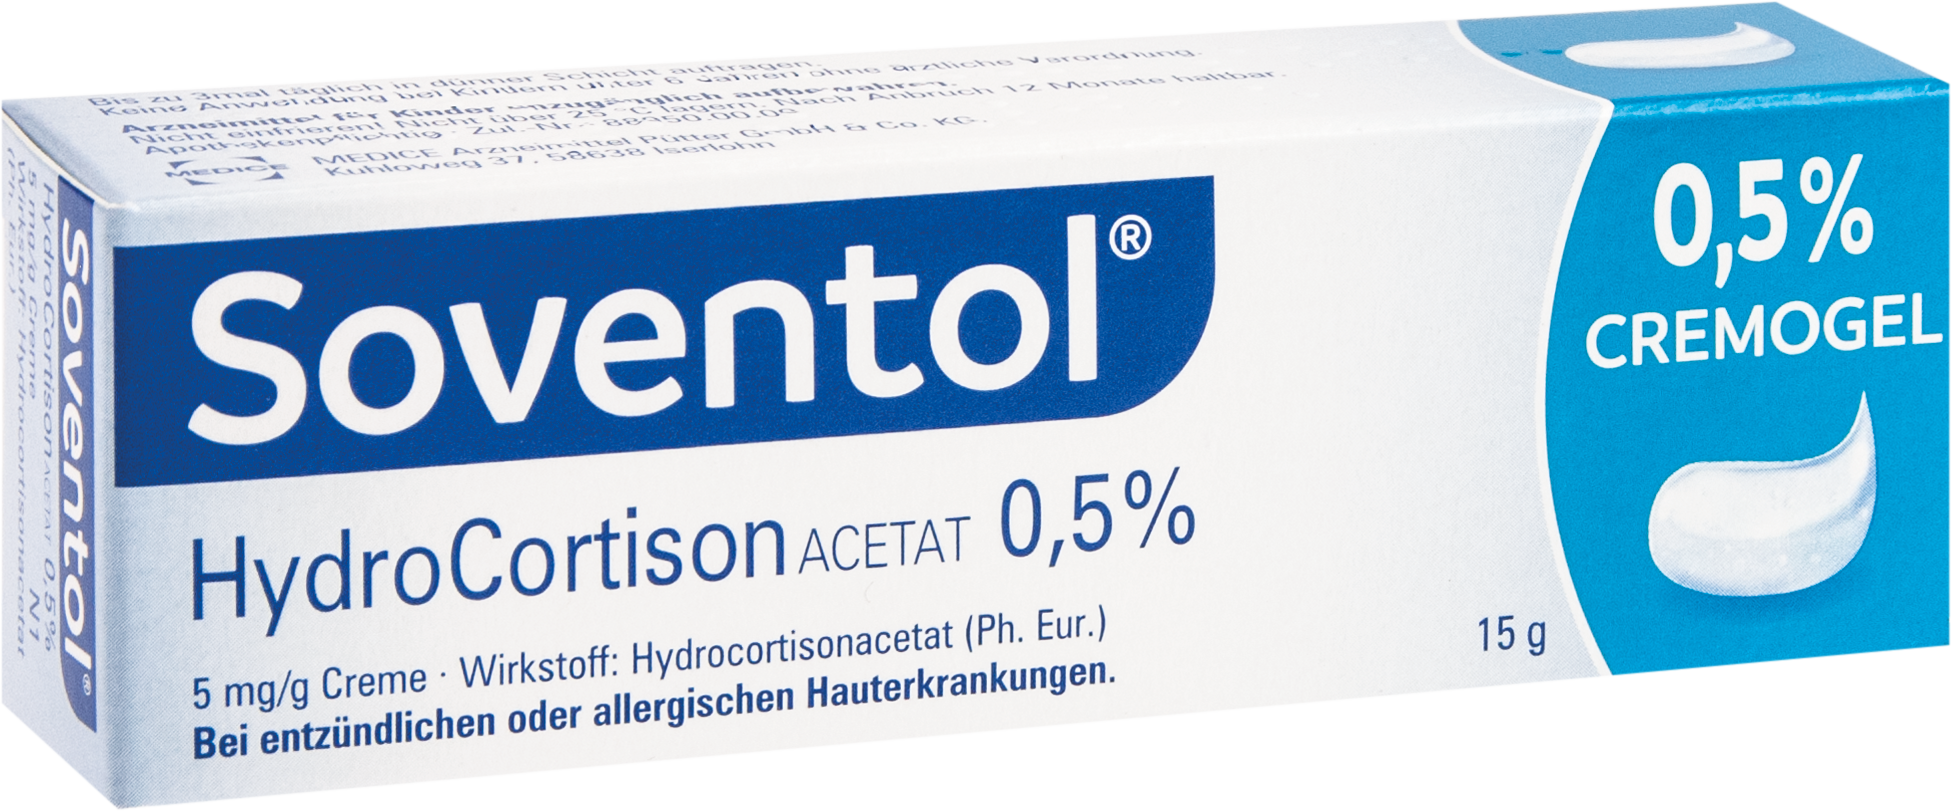 Soventol Hydrocortisonacetat 0.5%